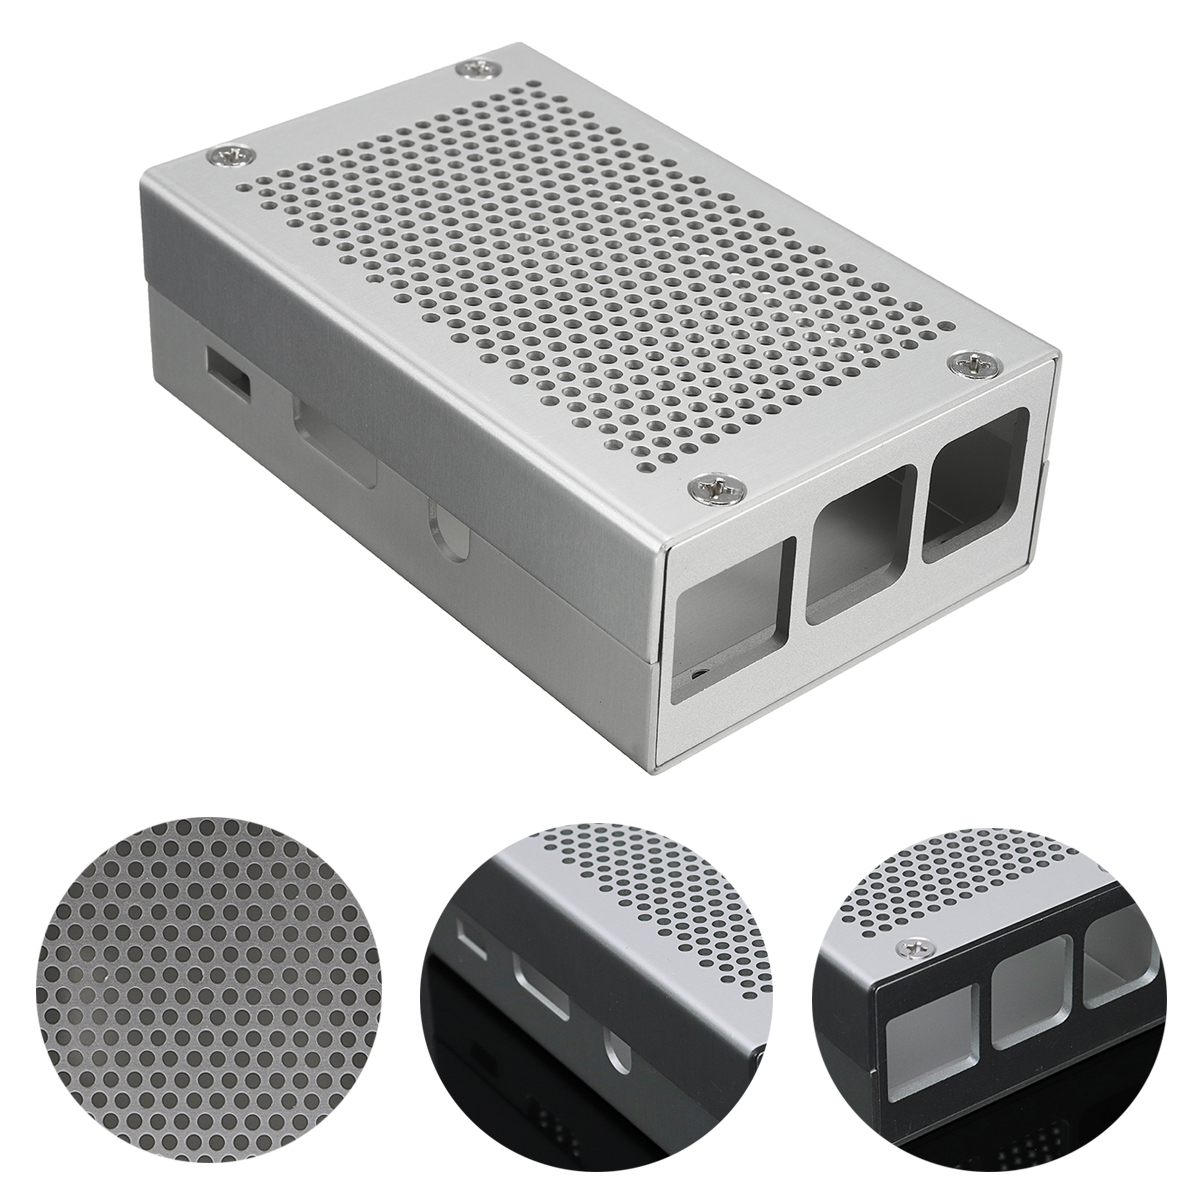 Aluminum Silver Case Metal Enclosure For Raspberry Pi 3 Model B/2 Model B/B+